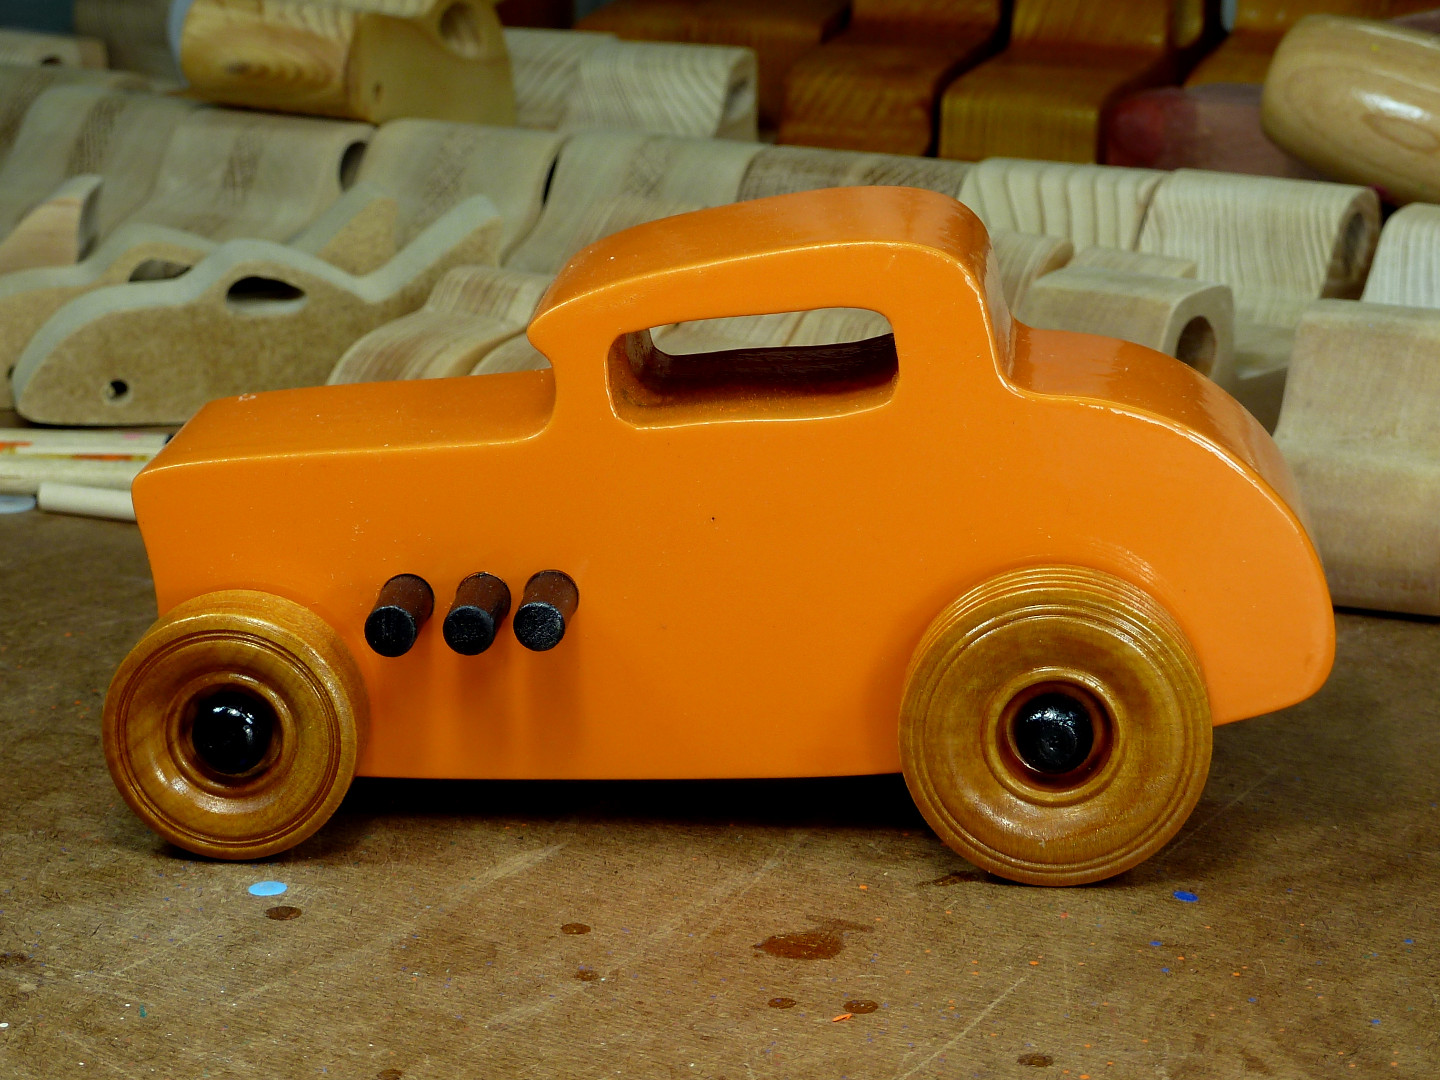 20170522-191949 Wooden Toy Car - Hot Rod Freaky Ford - 32 Deuce Coupe - MDF - Orange - Amber Shellac - Black.jpg